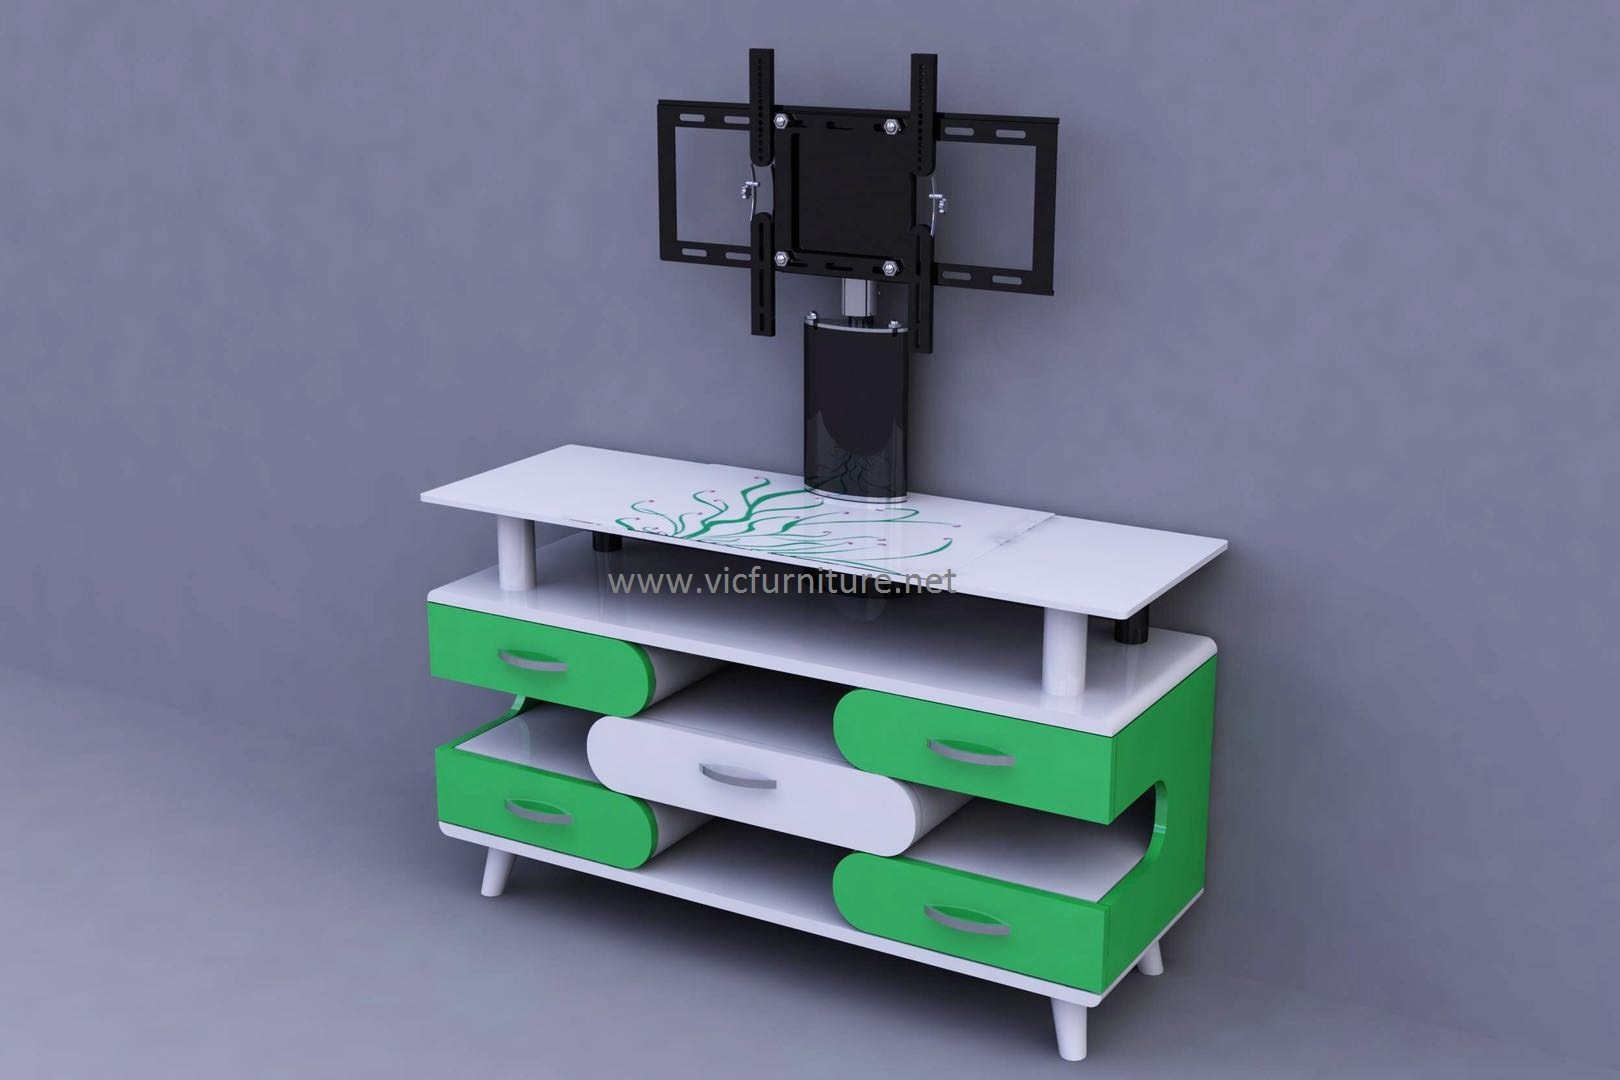 Tv Stand New Designs : China new design modern living room furniture for tv stand led rack